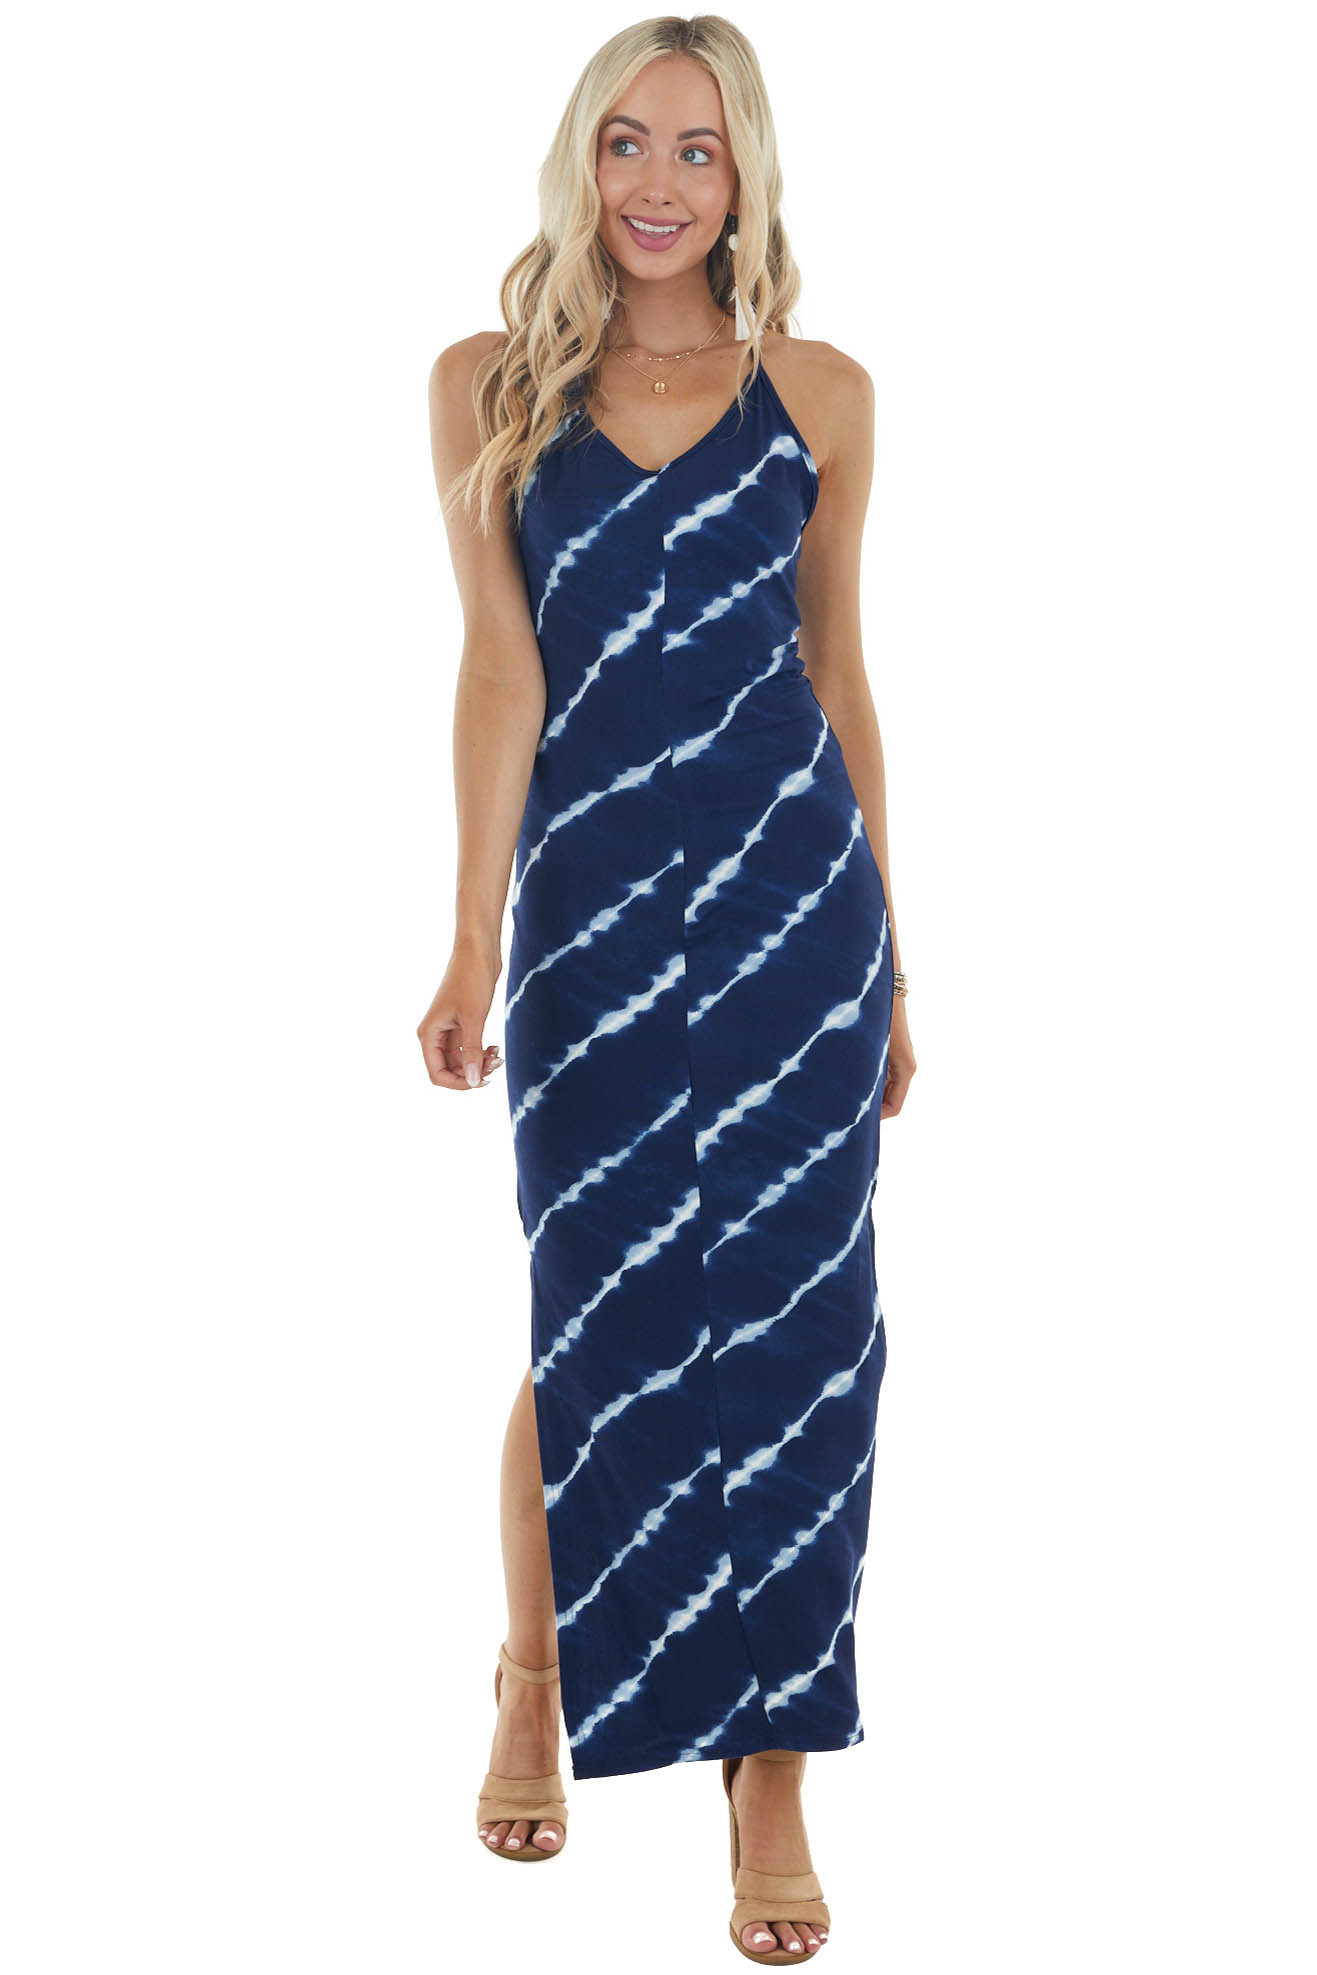 Navy Blue Tie Dye Sleeveless Knit Maxi Dress with Side Slits